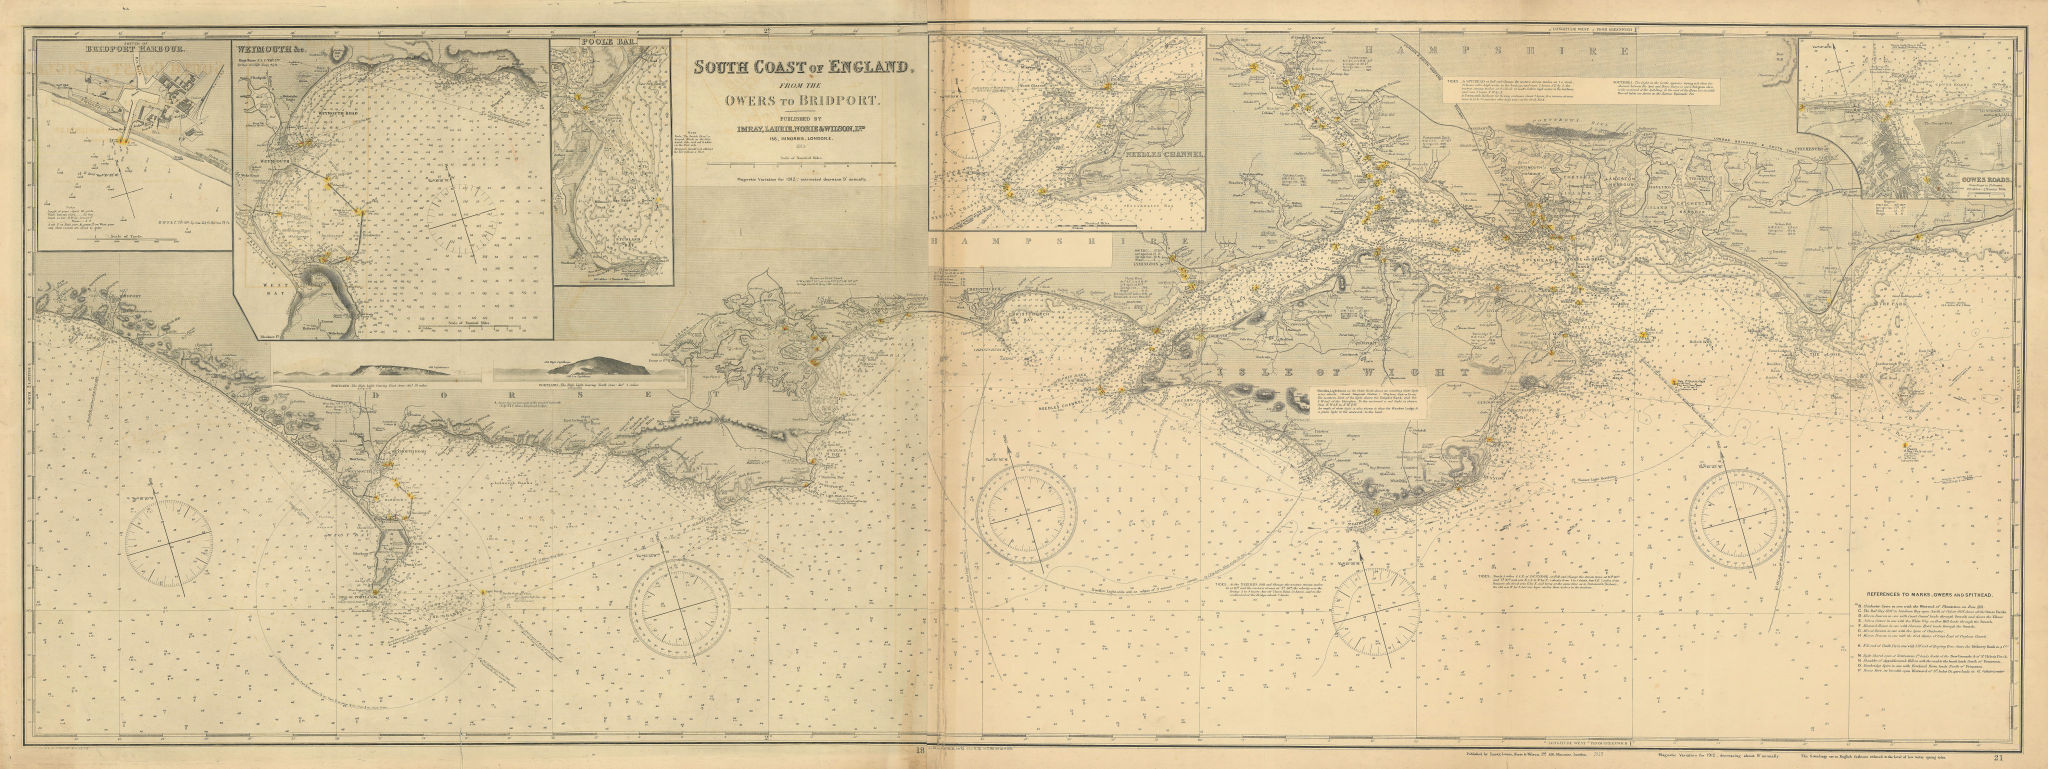 South Coast of England. 175x65cm. Imray Laurie Norie Wilson sea chart 1913 map